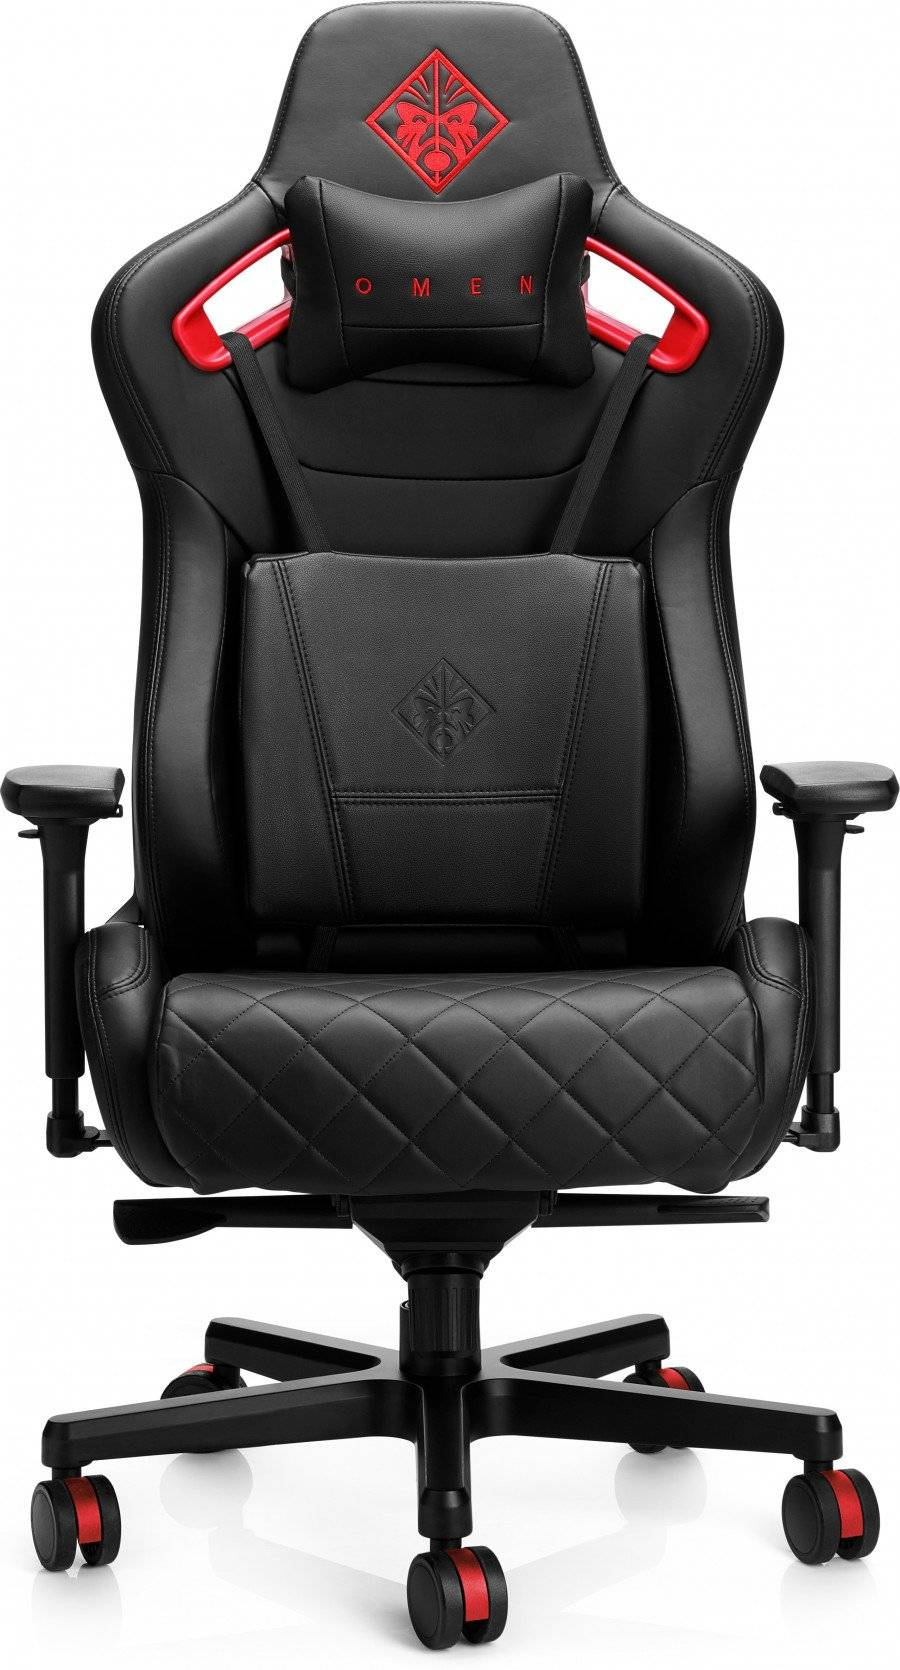 HP OMEN by HP Citadel Gaming Chair Sedie gaming Console, giochi & giocattoli